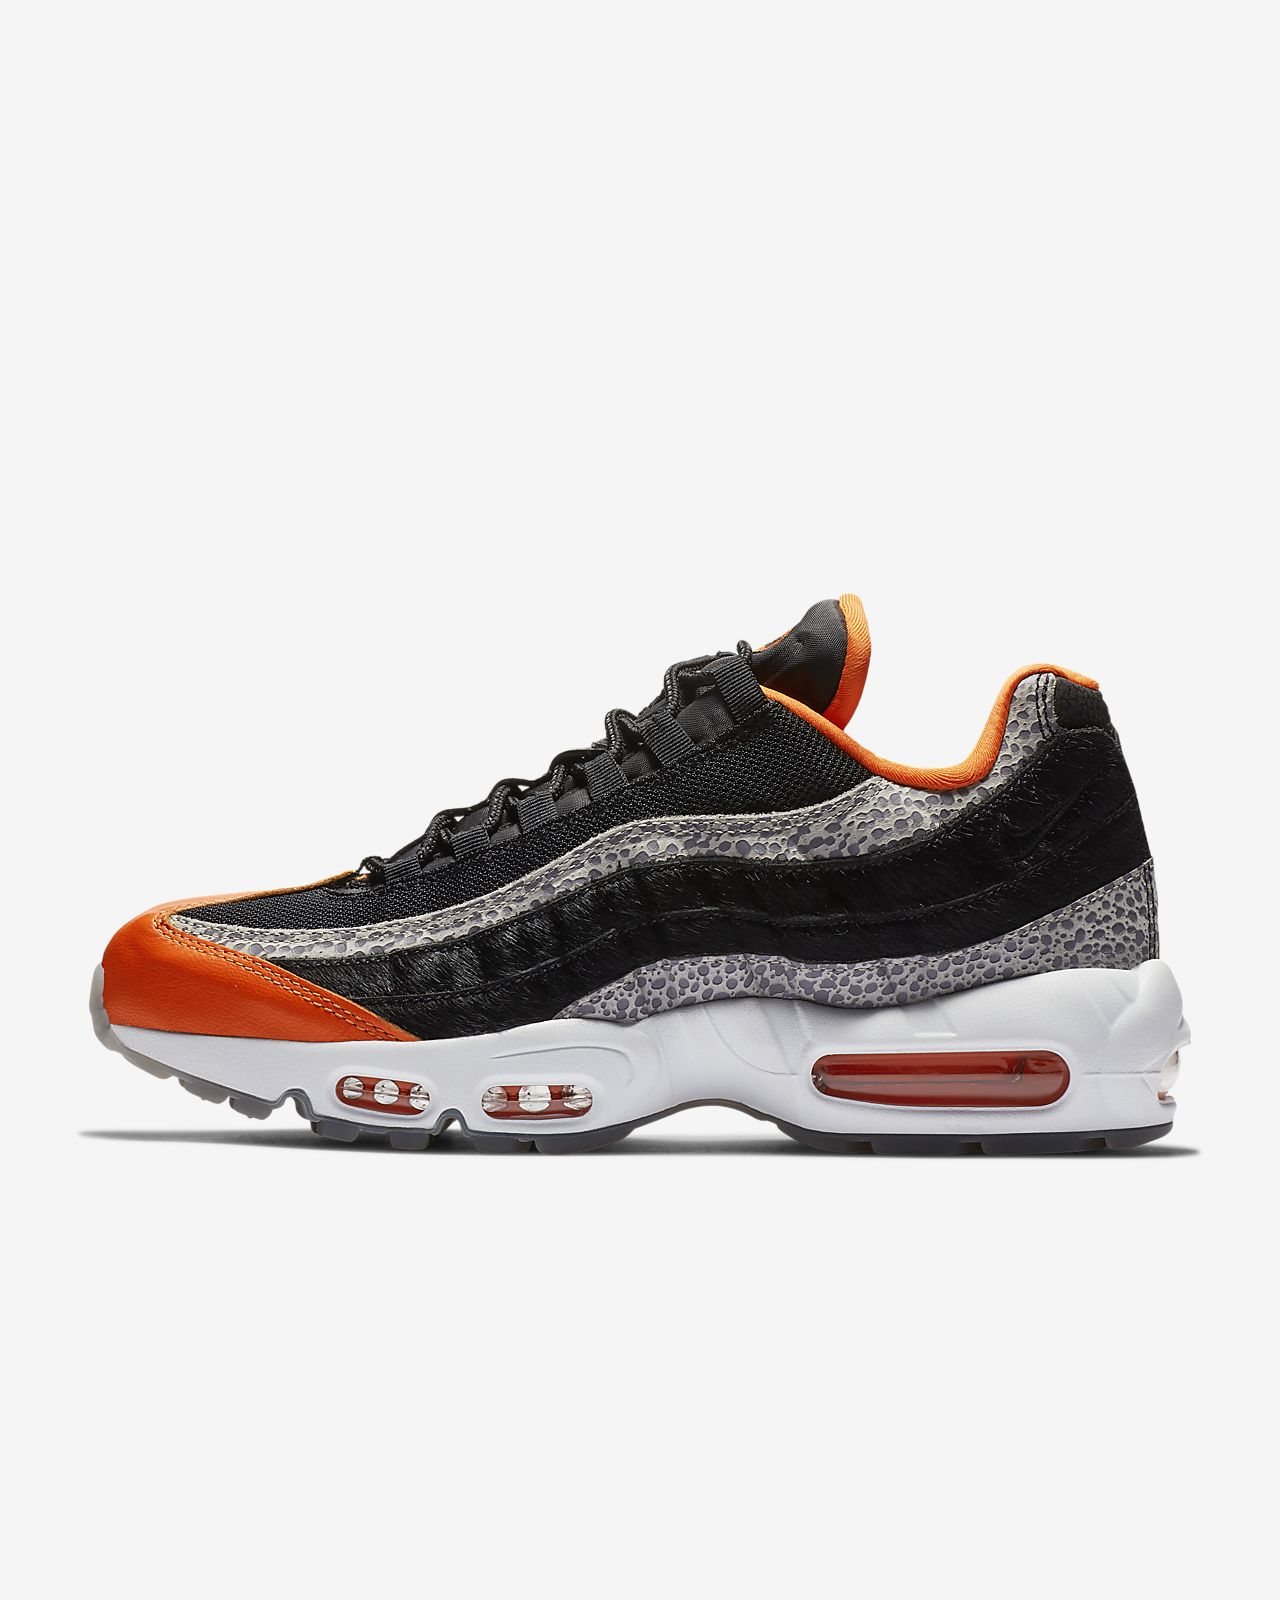 new styles 1cd4f 71671 ... Nike Air Max 95 Mens Shoe